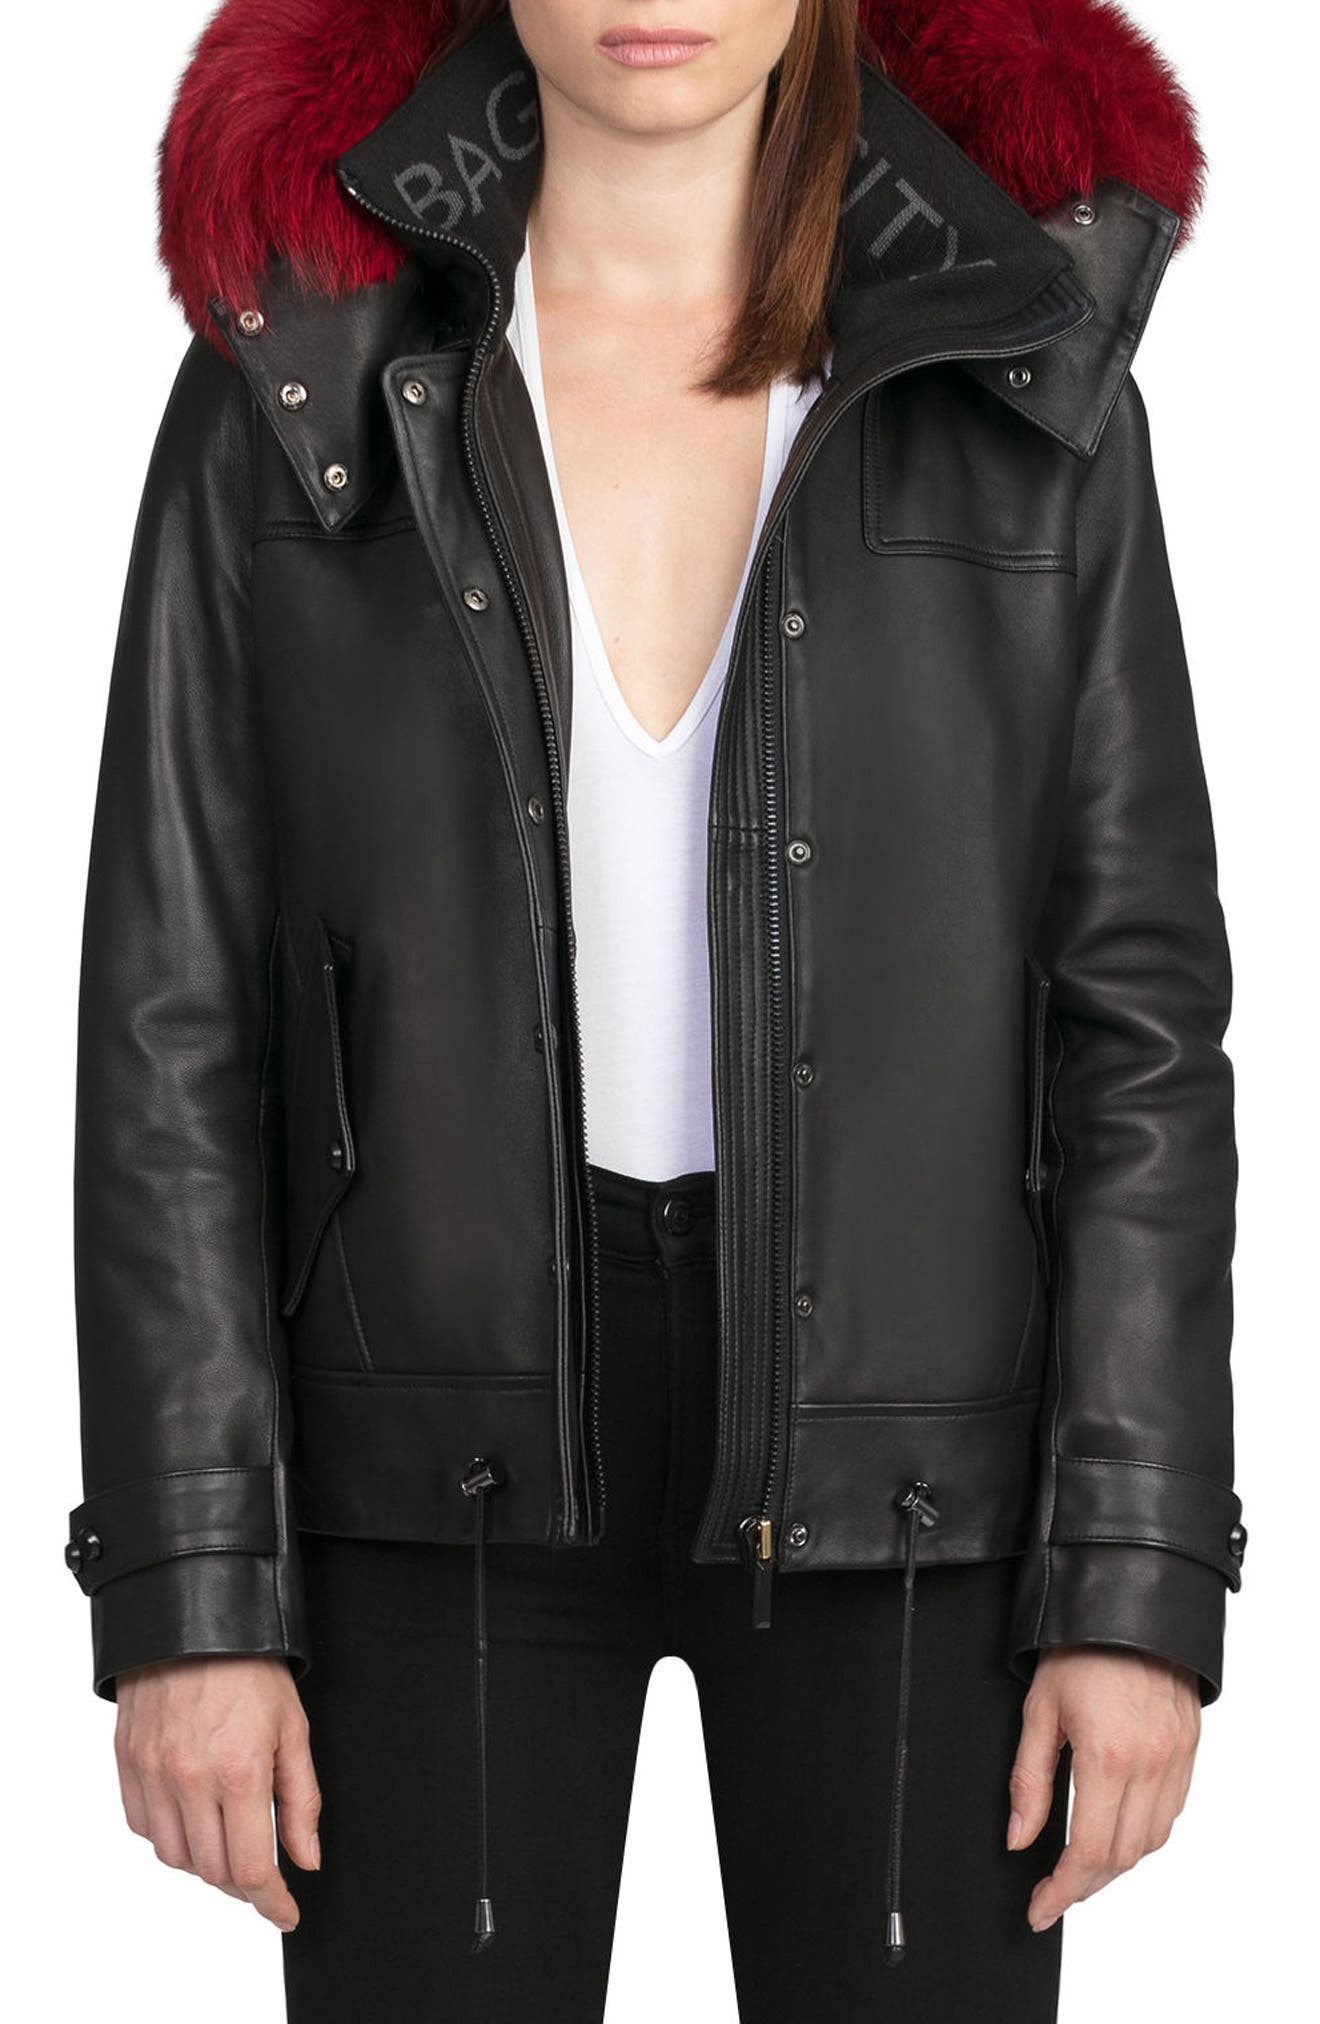 BAGATELLE.CITY The Aspen Leather Jacket with Genuine Fox Fur Trim,                             Main thumbnail 1, color,                             Black/ Red